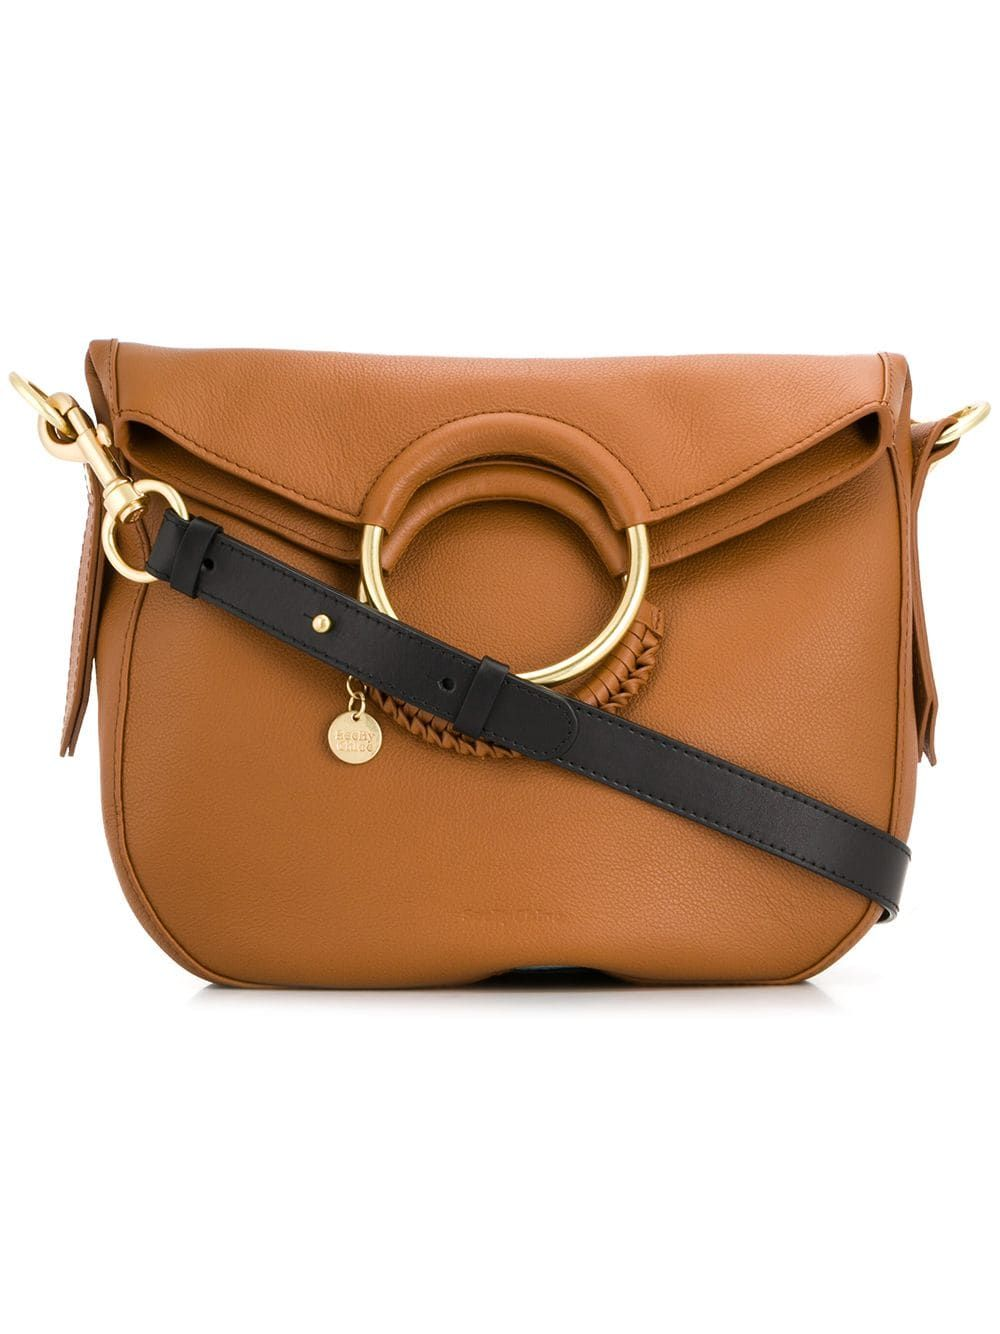 0e04ca15 See By Chloé Monroe shoulder bag - Brown in 2019 | Products ...